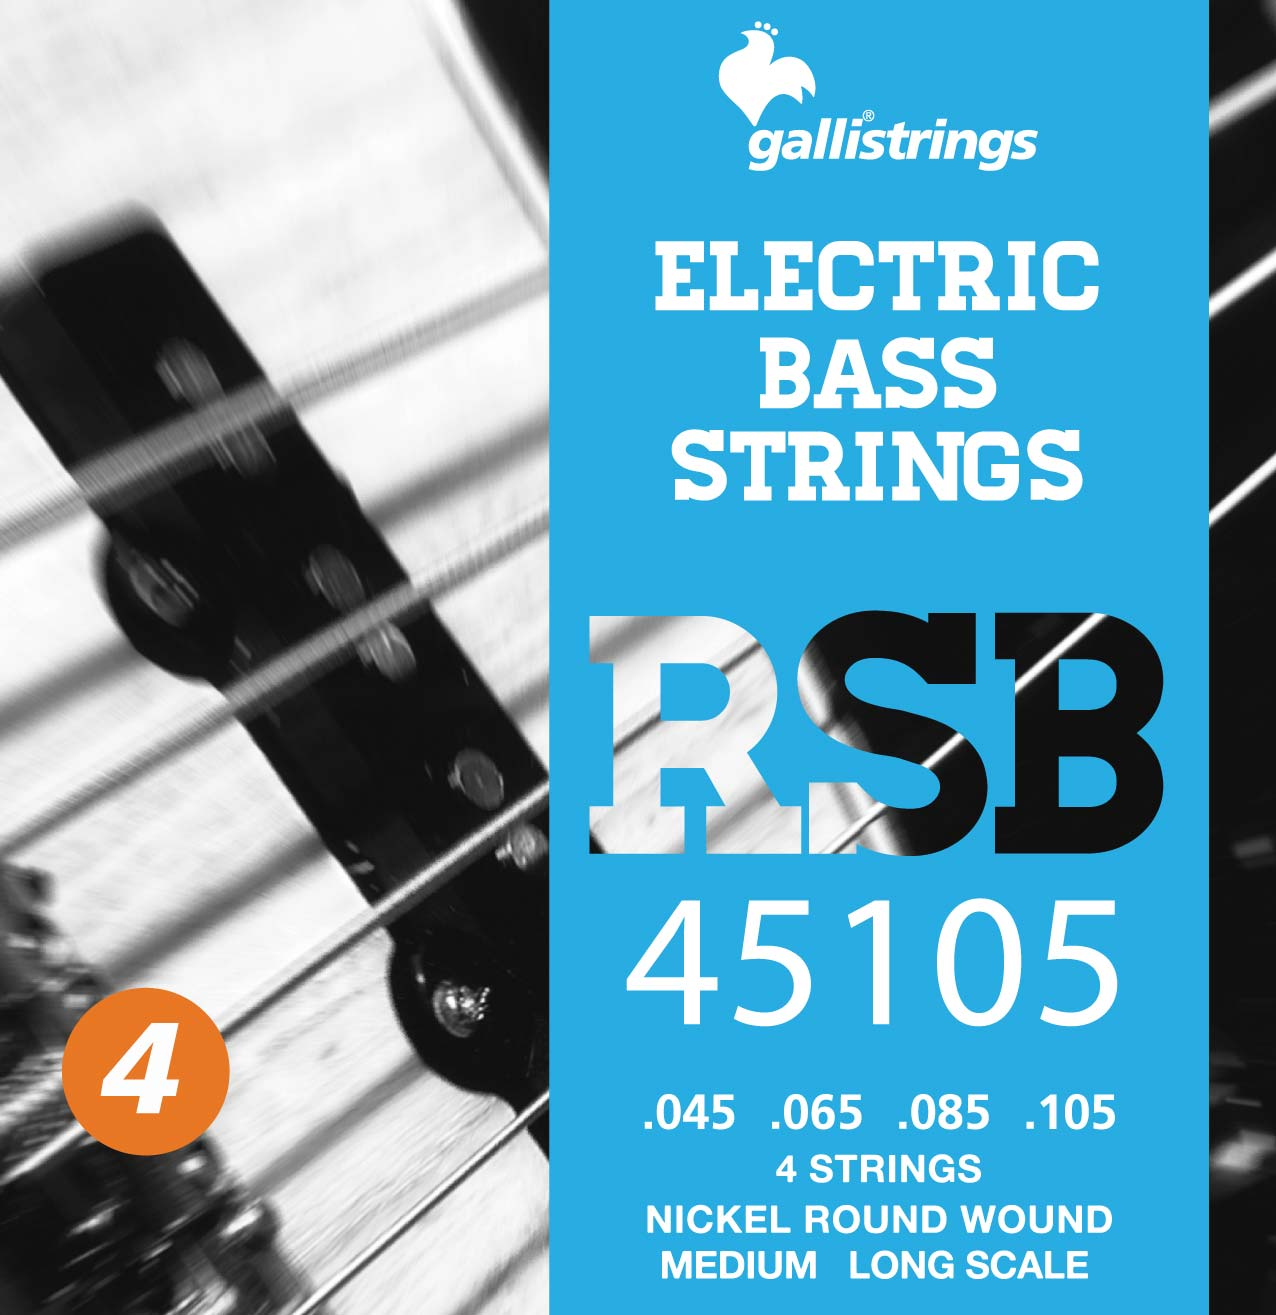 RSB45105  4 strings  Medium